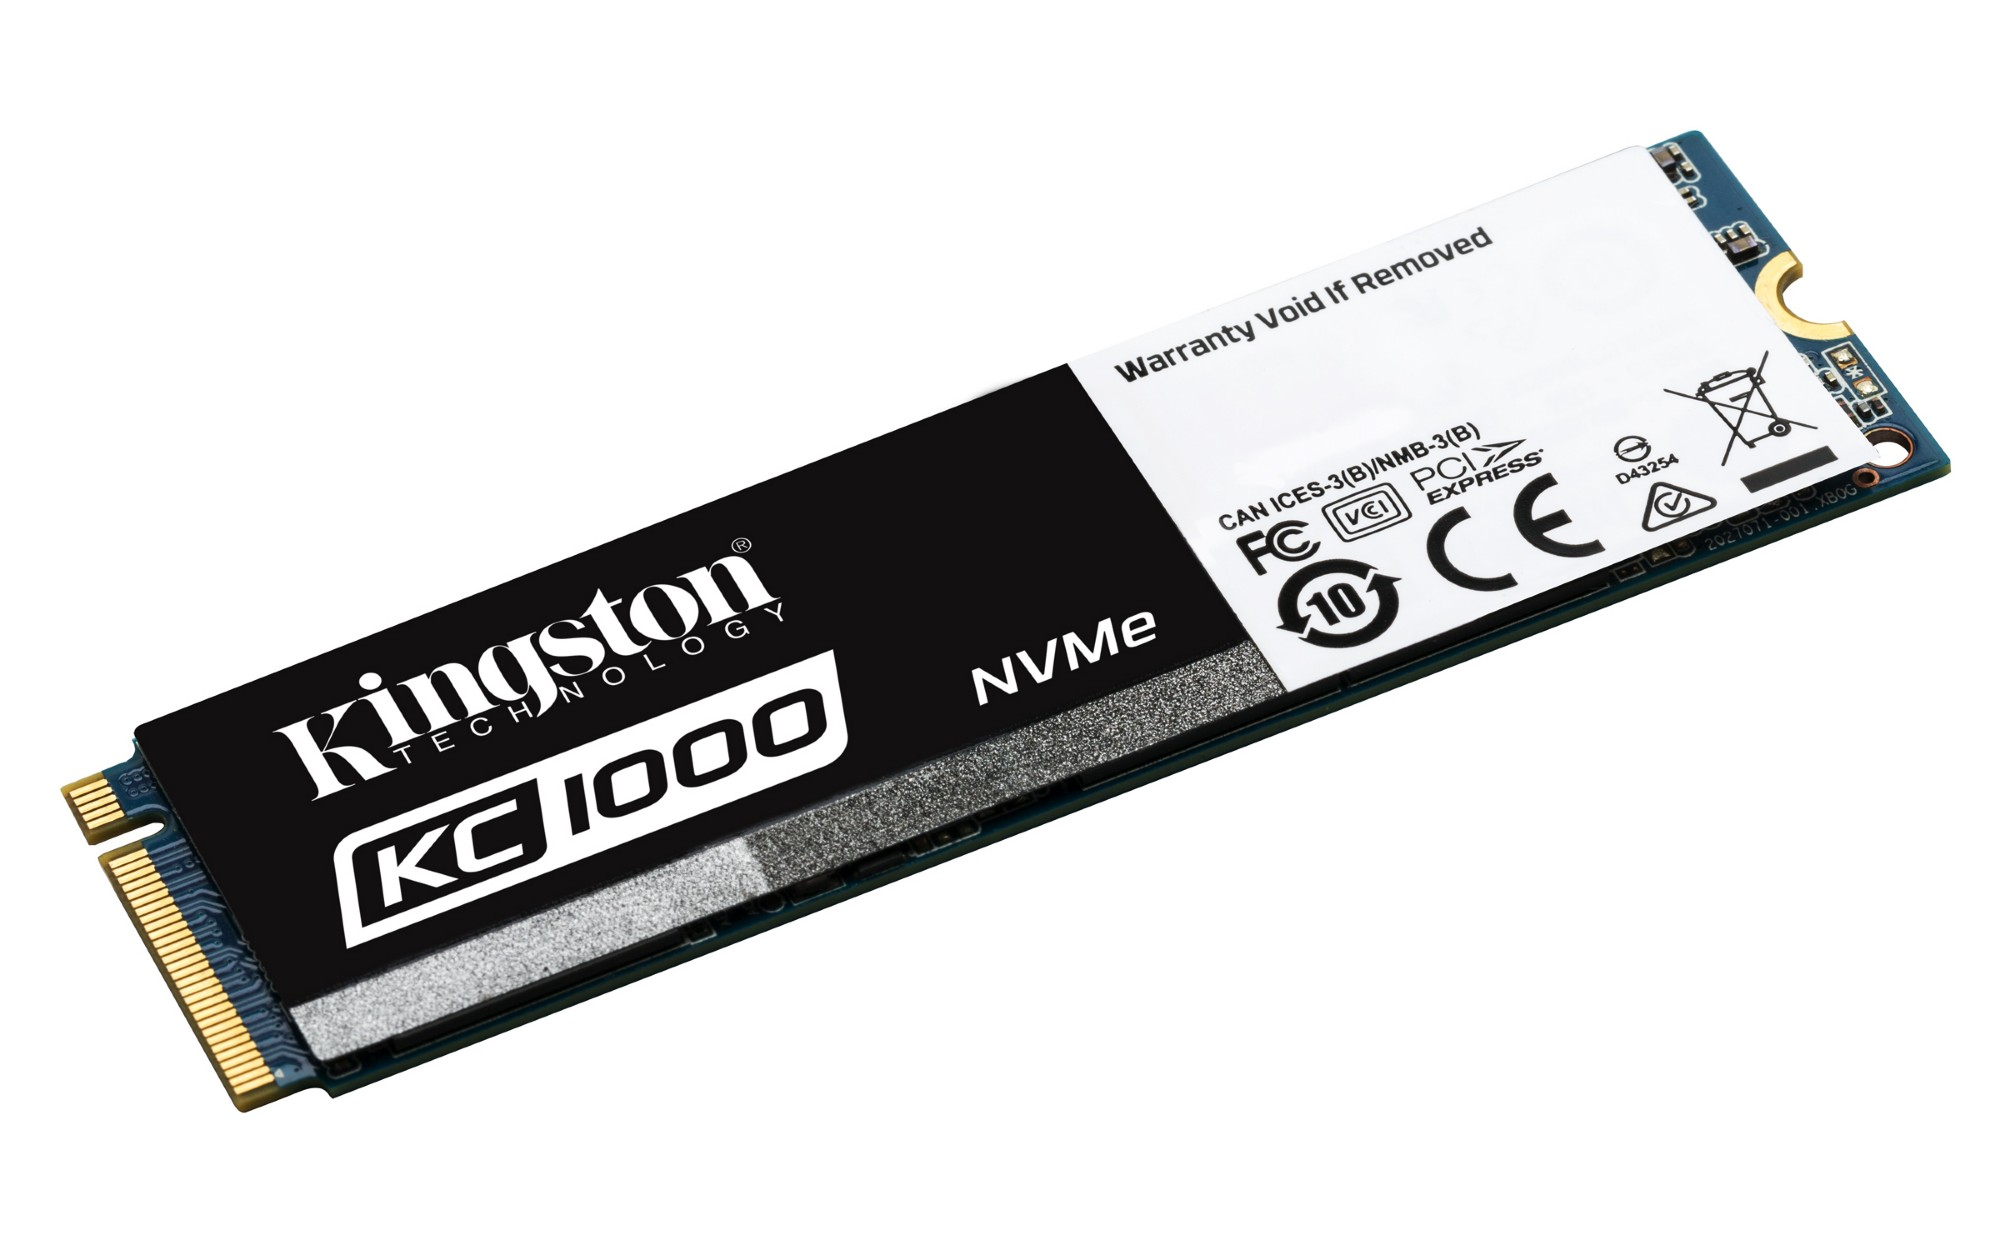 KINGSTON KC1000 960GB M.2 PCI EXPRESS 3.0